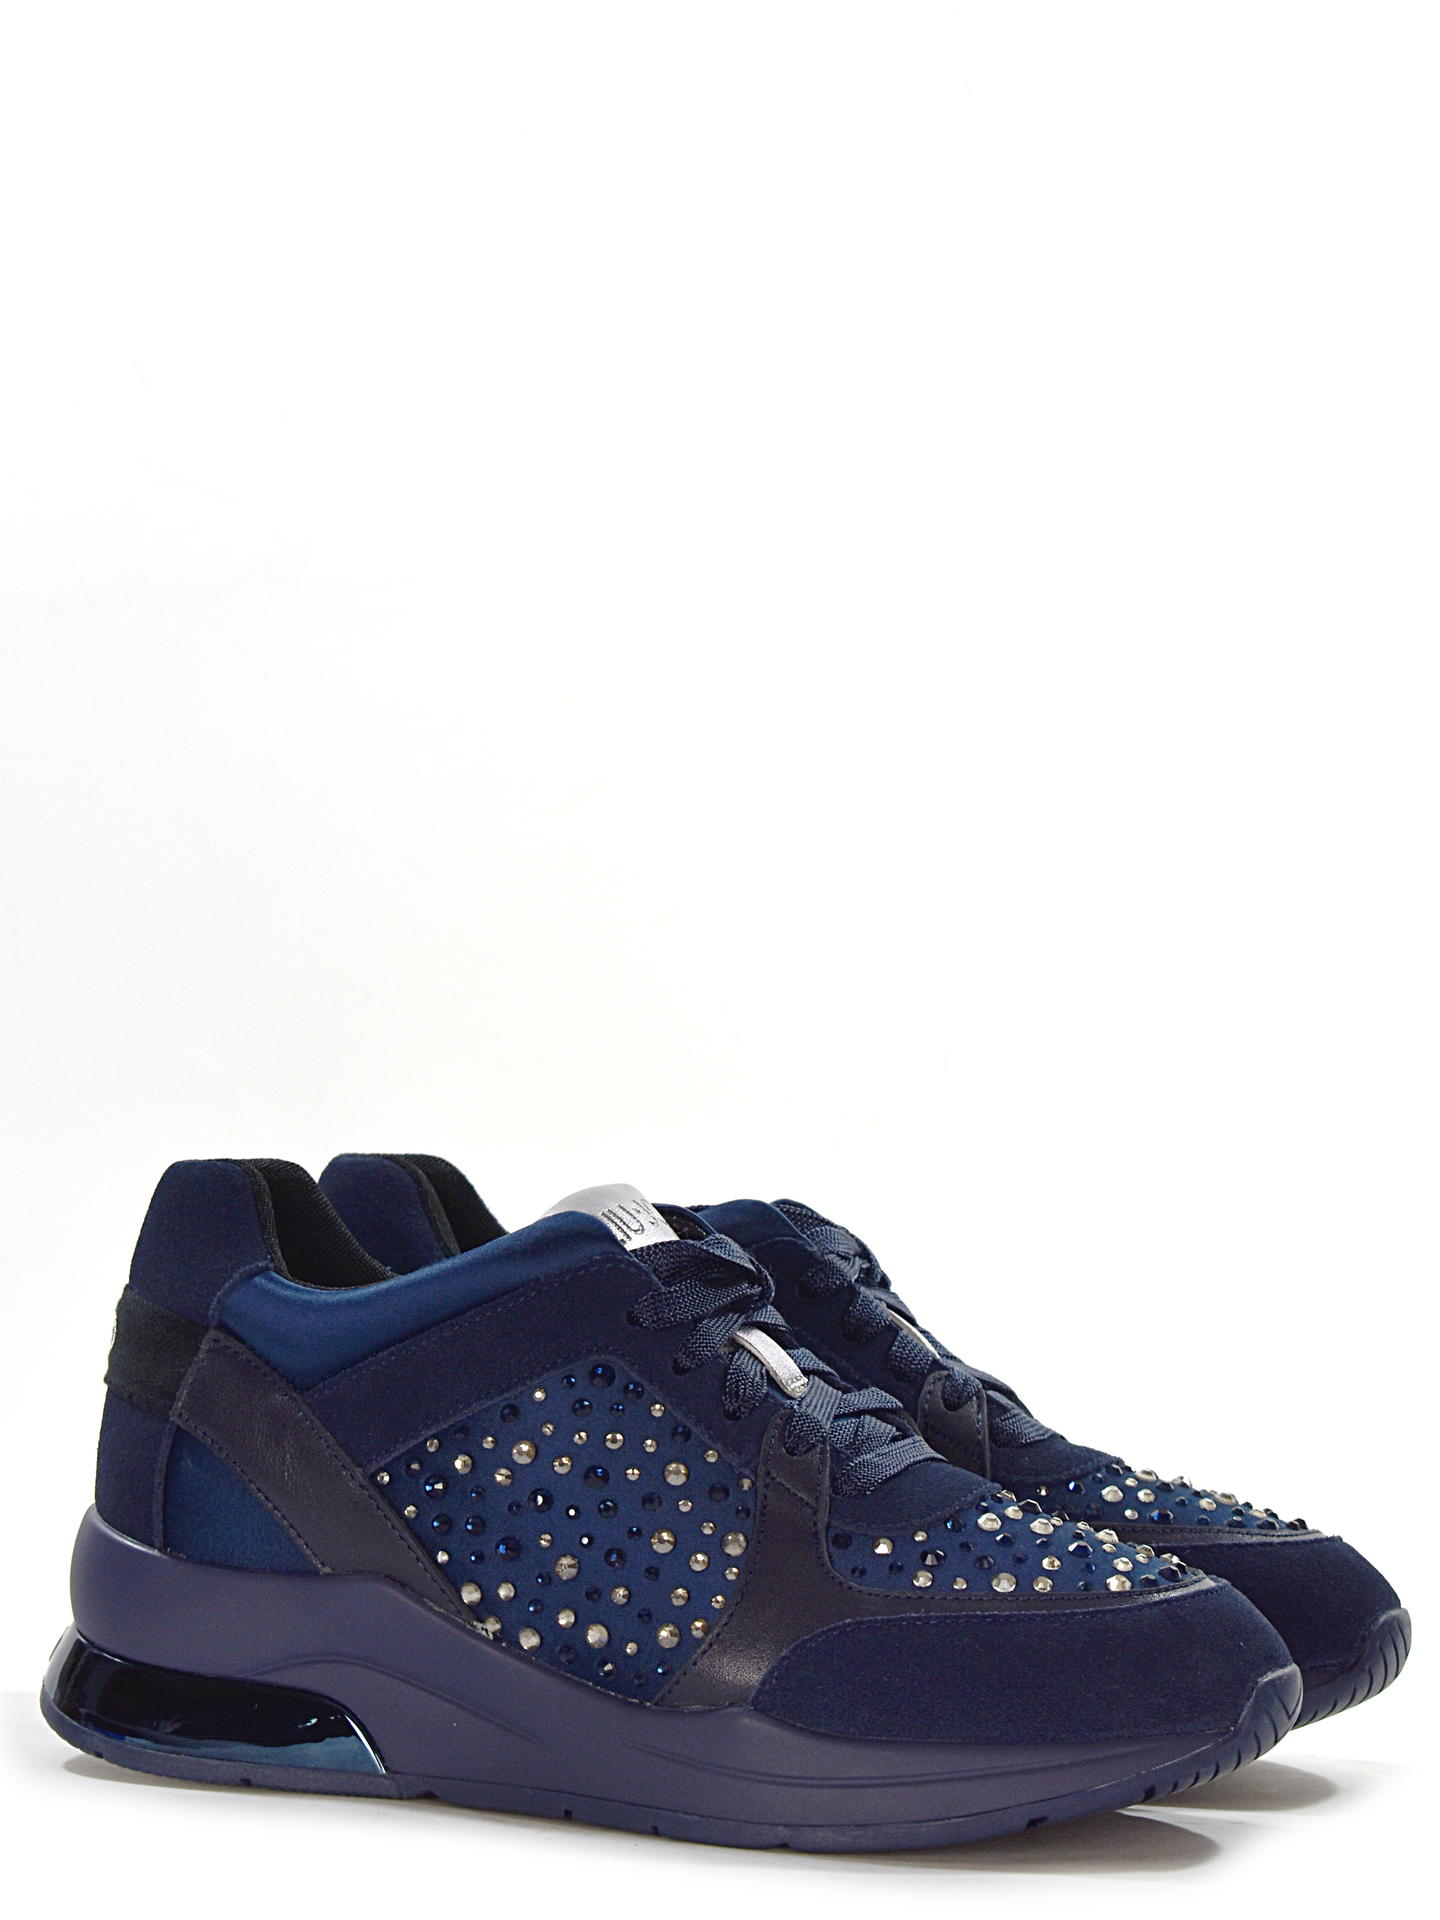 competitive price 9d36a 18630 SNEAKERS LIU.JO SHOES KARLIE05 BLUE